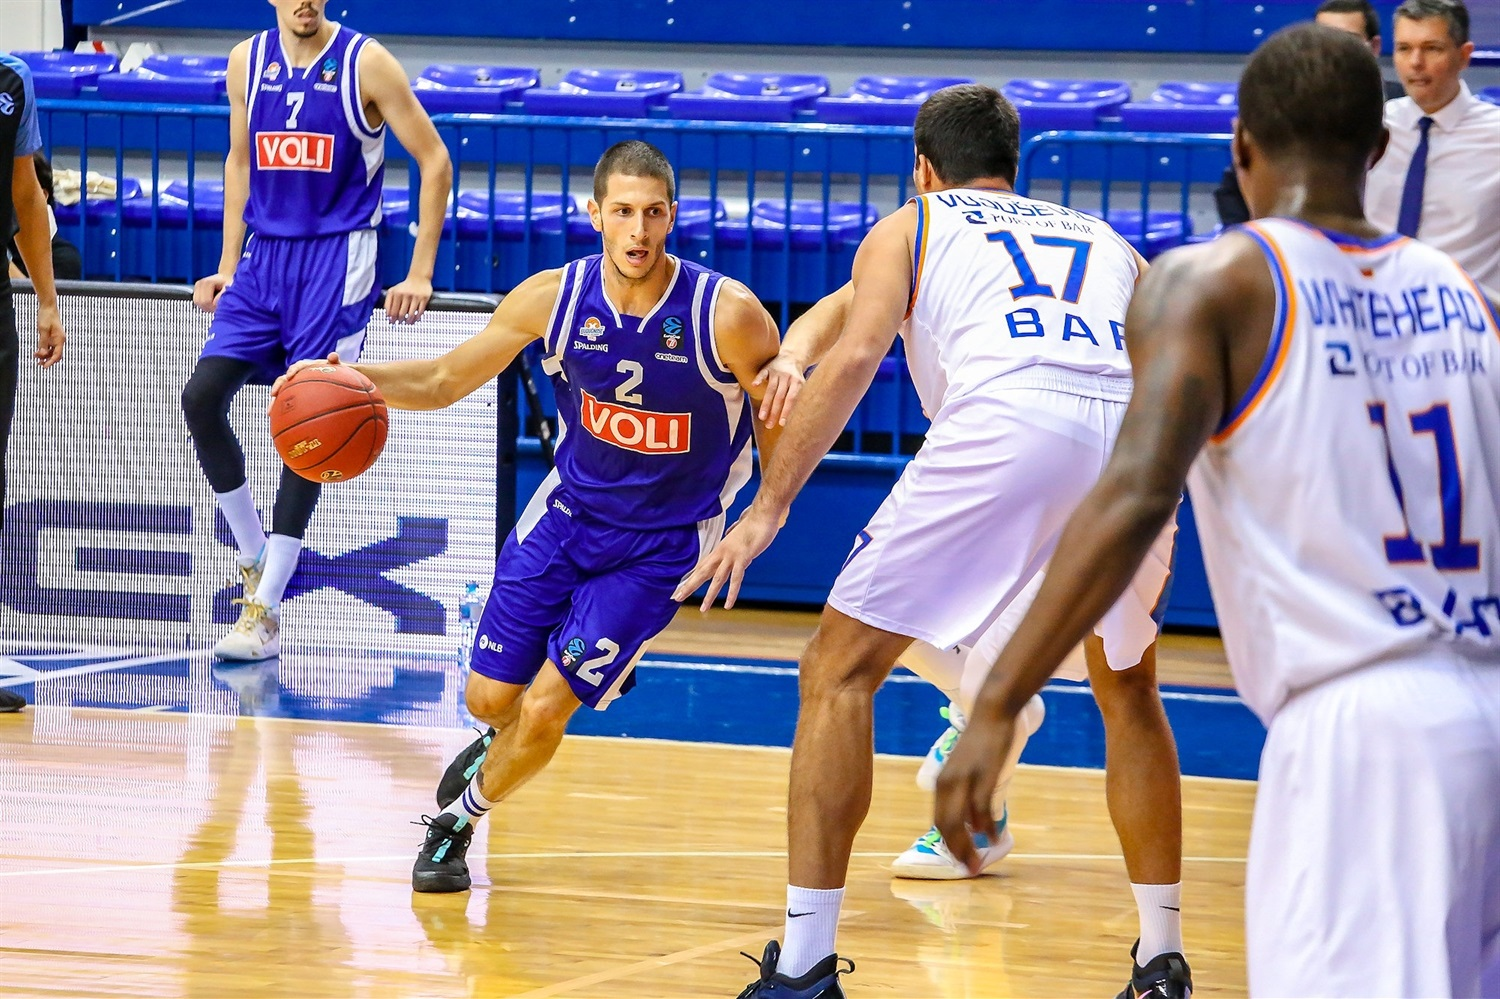 Nikola Ivanovic - Buducnost VOLI Podgorica (photo Mornar) - EC20